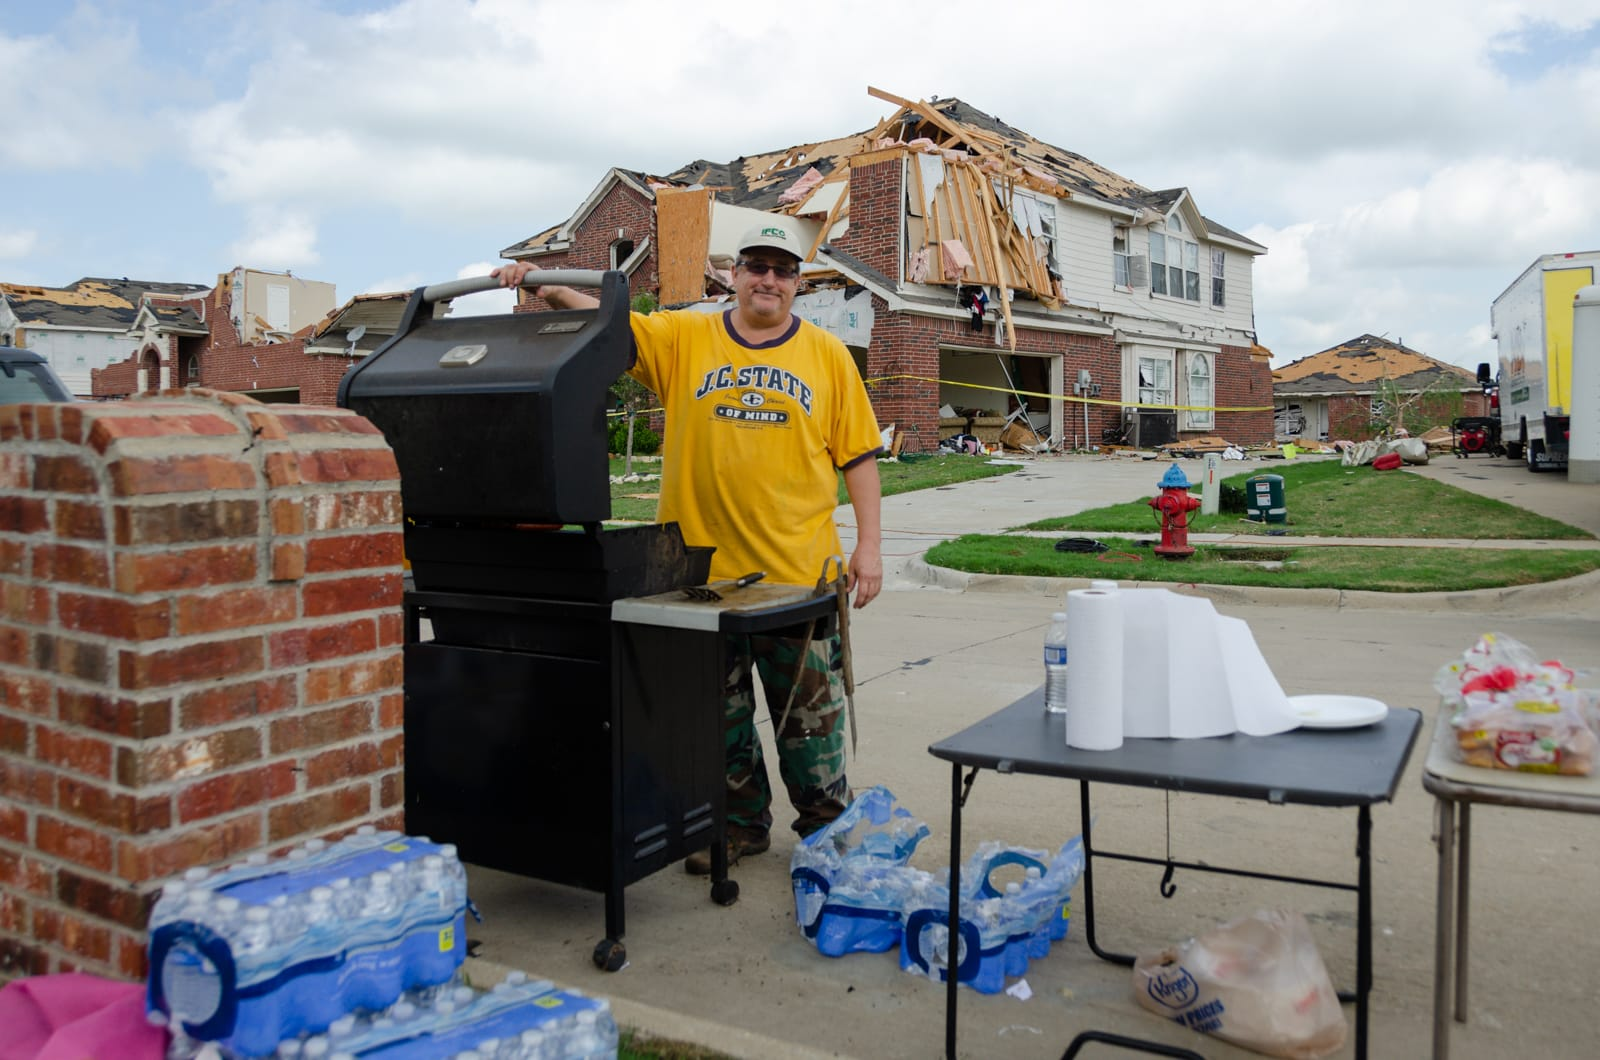 Steve grilling food for people who are cleaning up after their homes were hit by a tornado